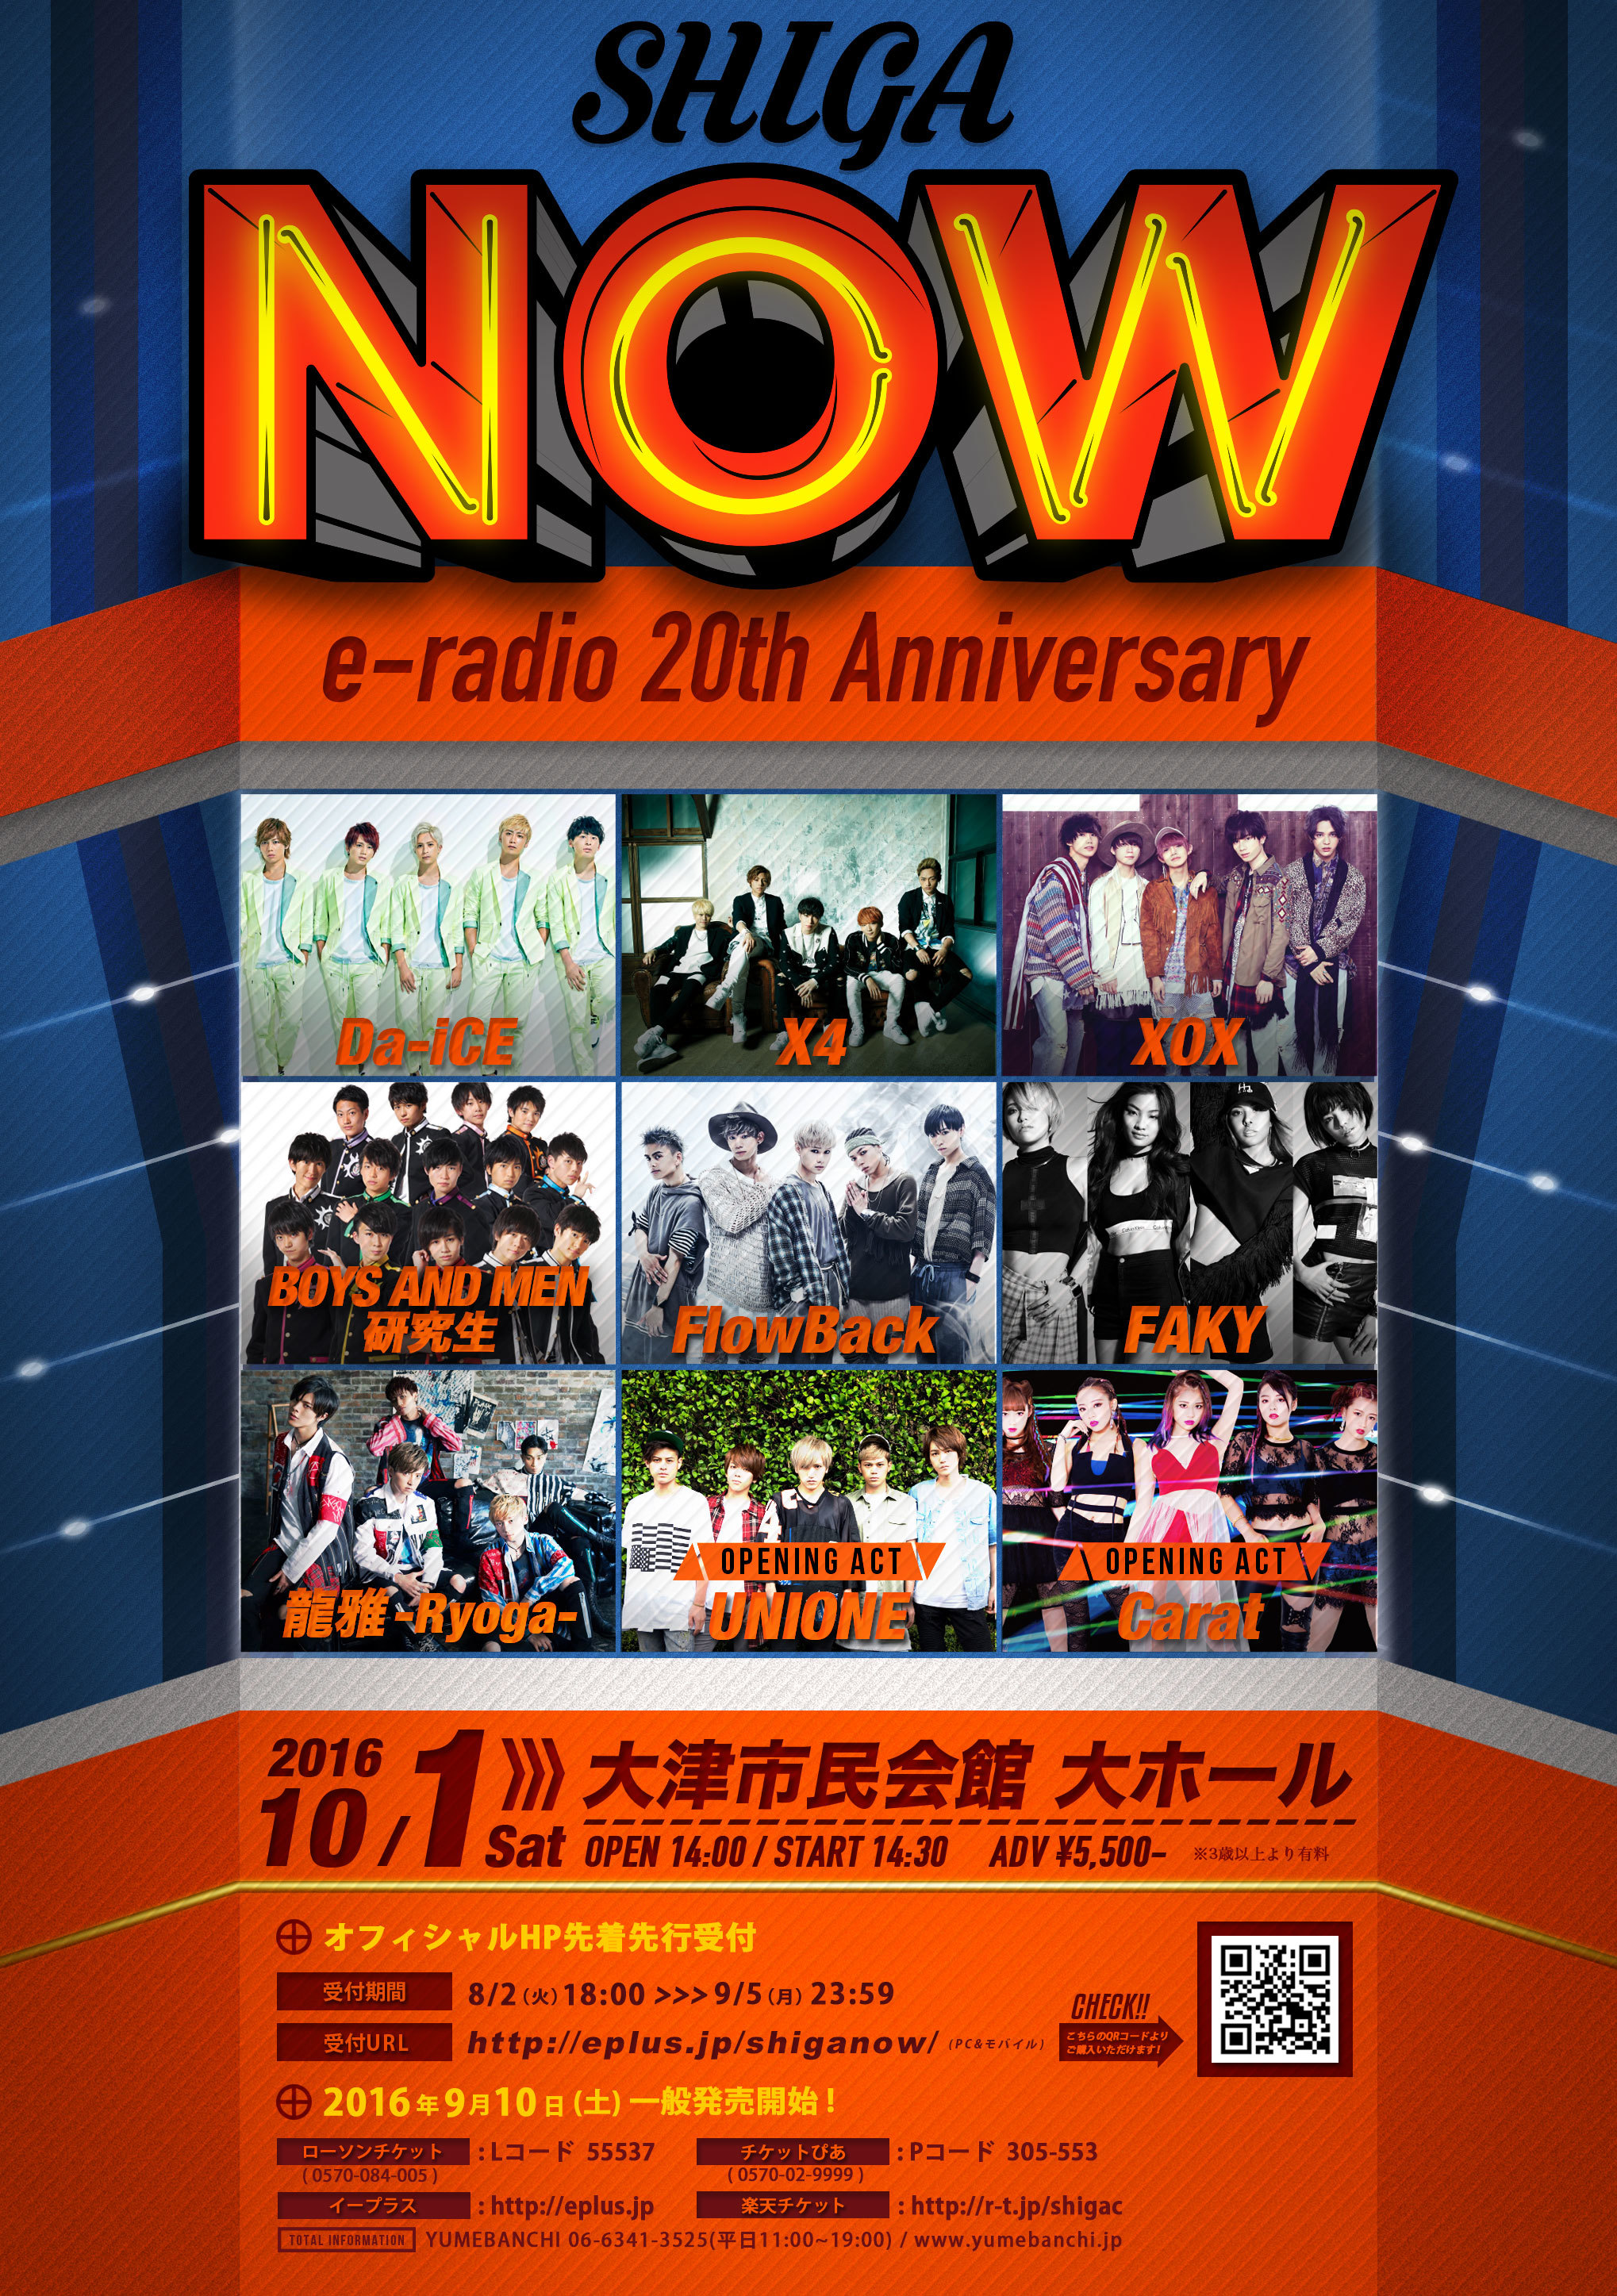 『e-radio 20th Anniversary SHIGA NOW』